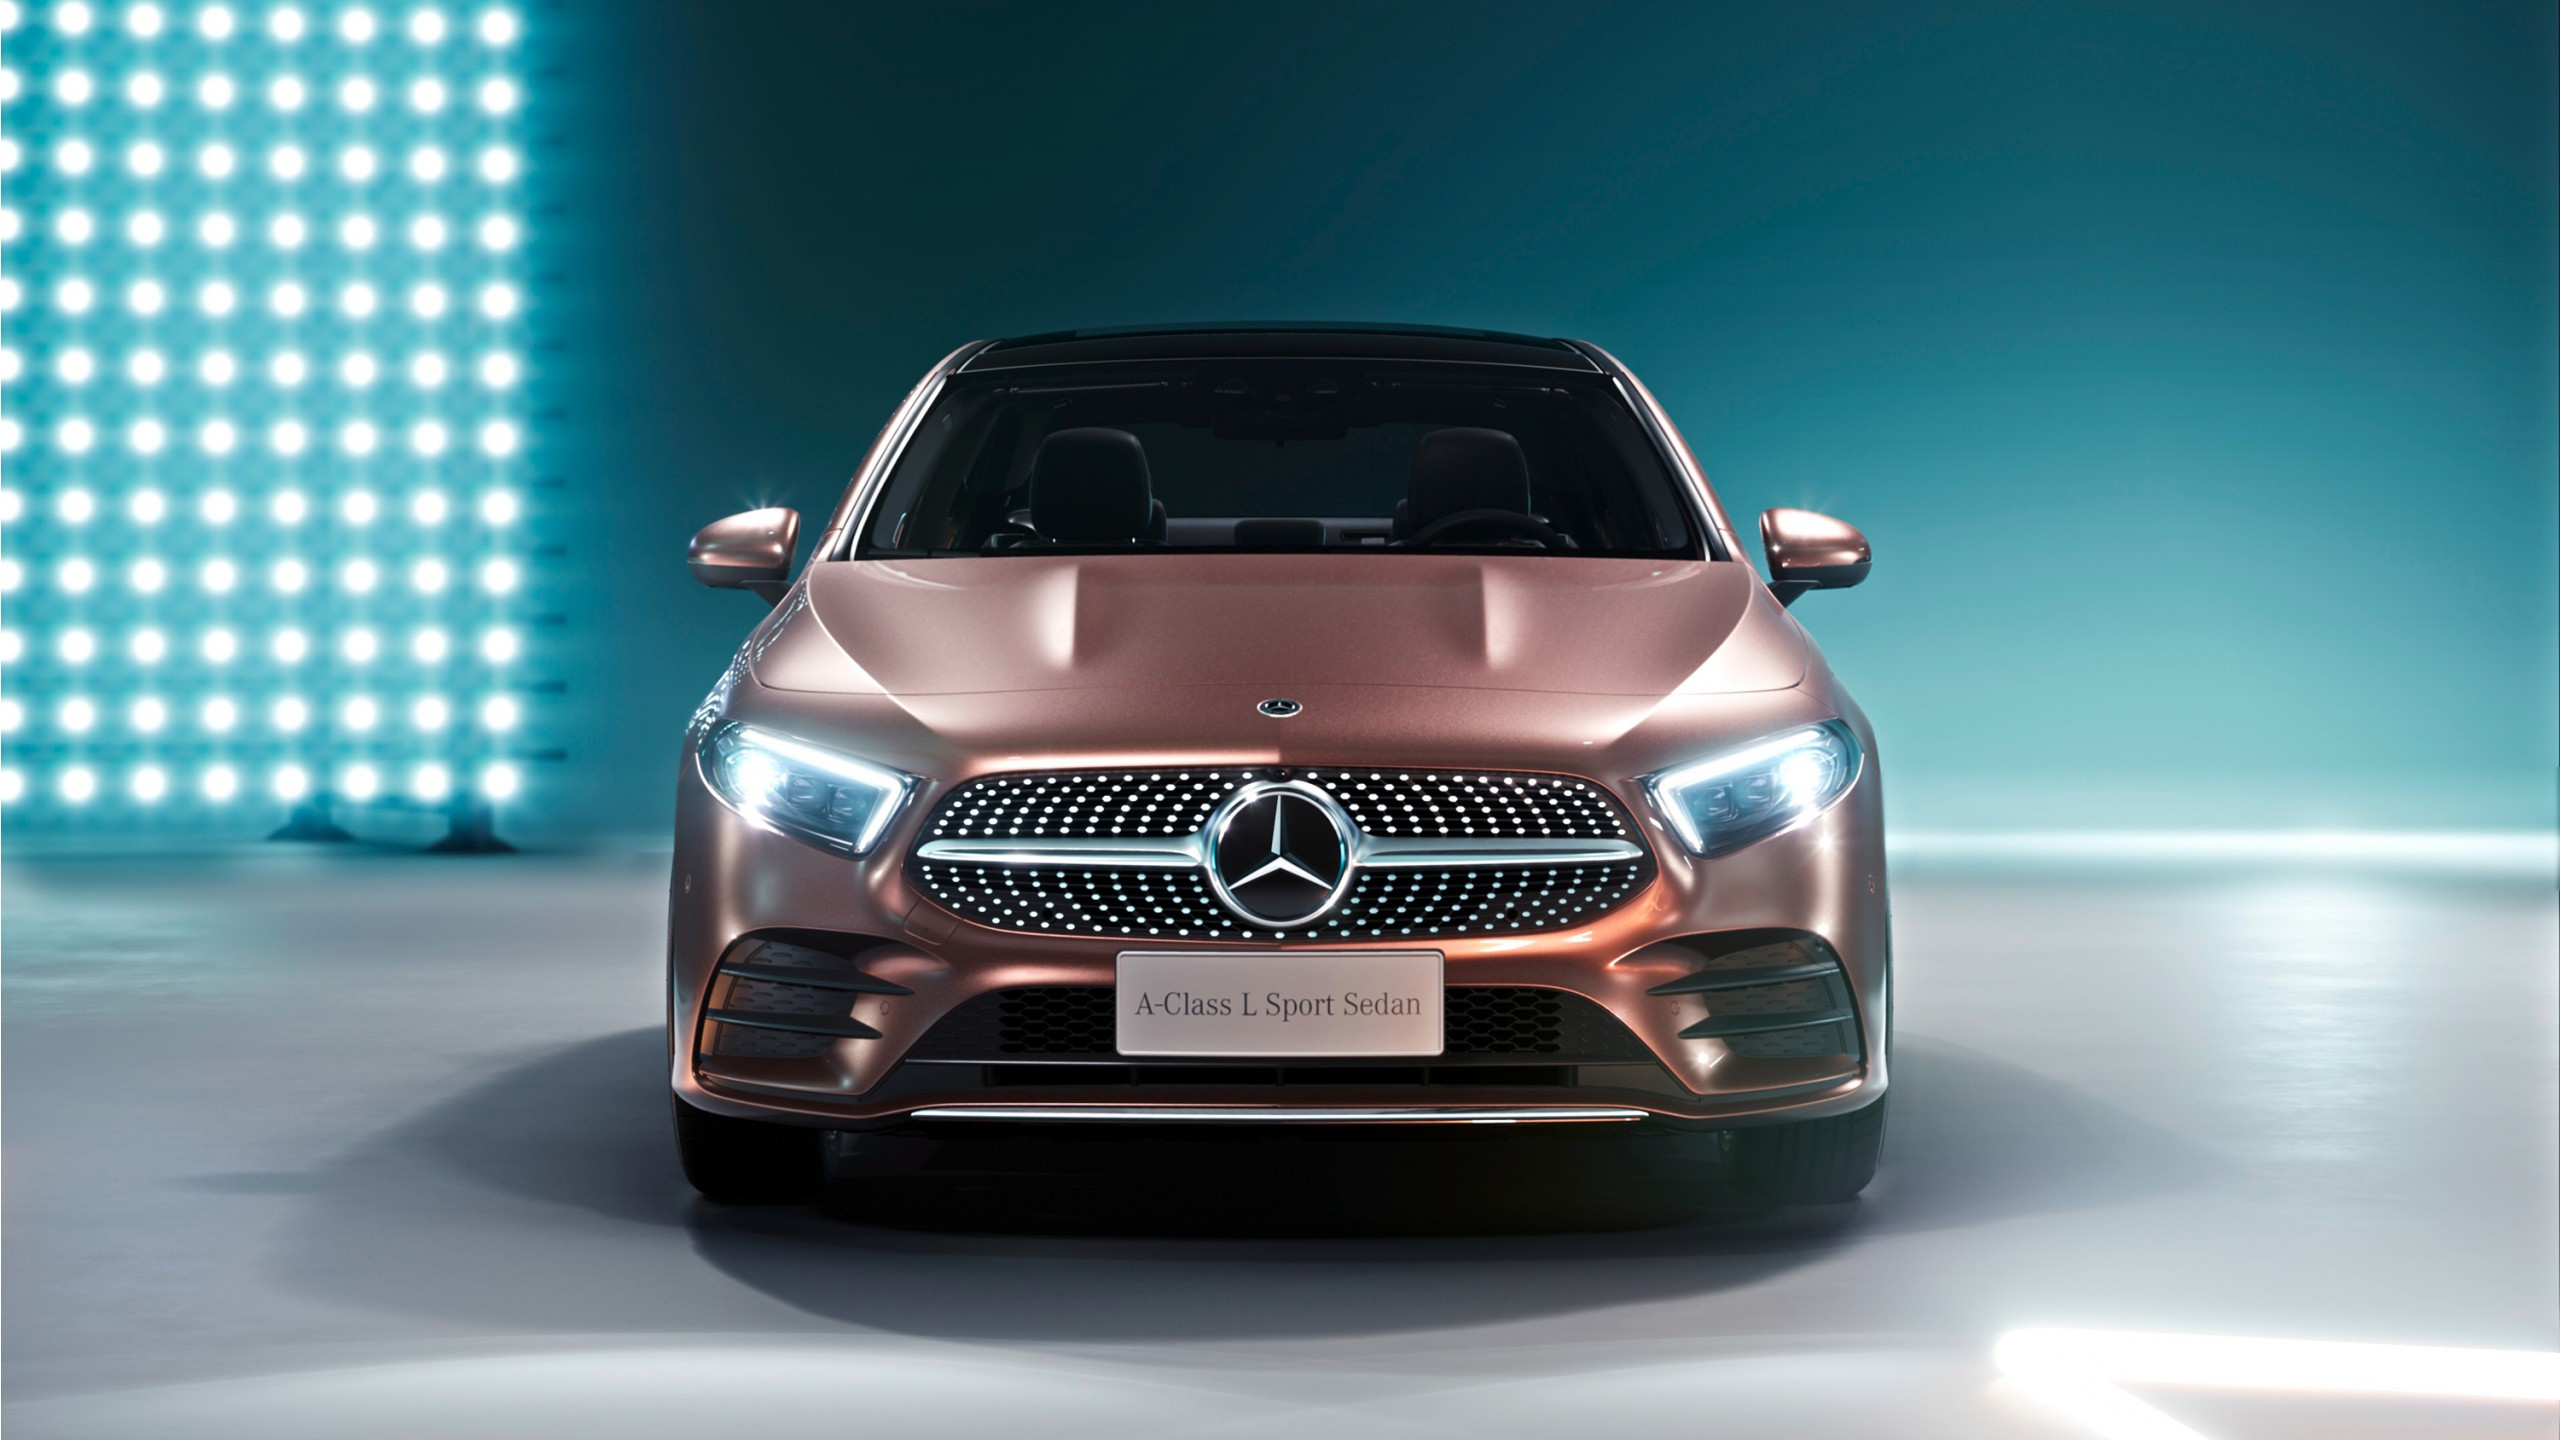 Mercedes Benz Cla >> 2019 Mercedes Benz A200 L Sport Sedan Wallpaper | HD Car ...